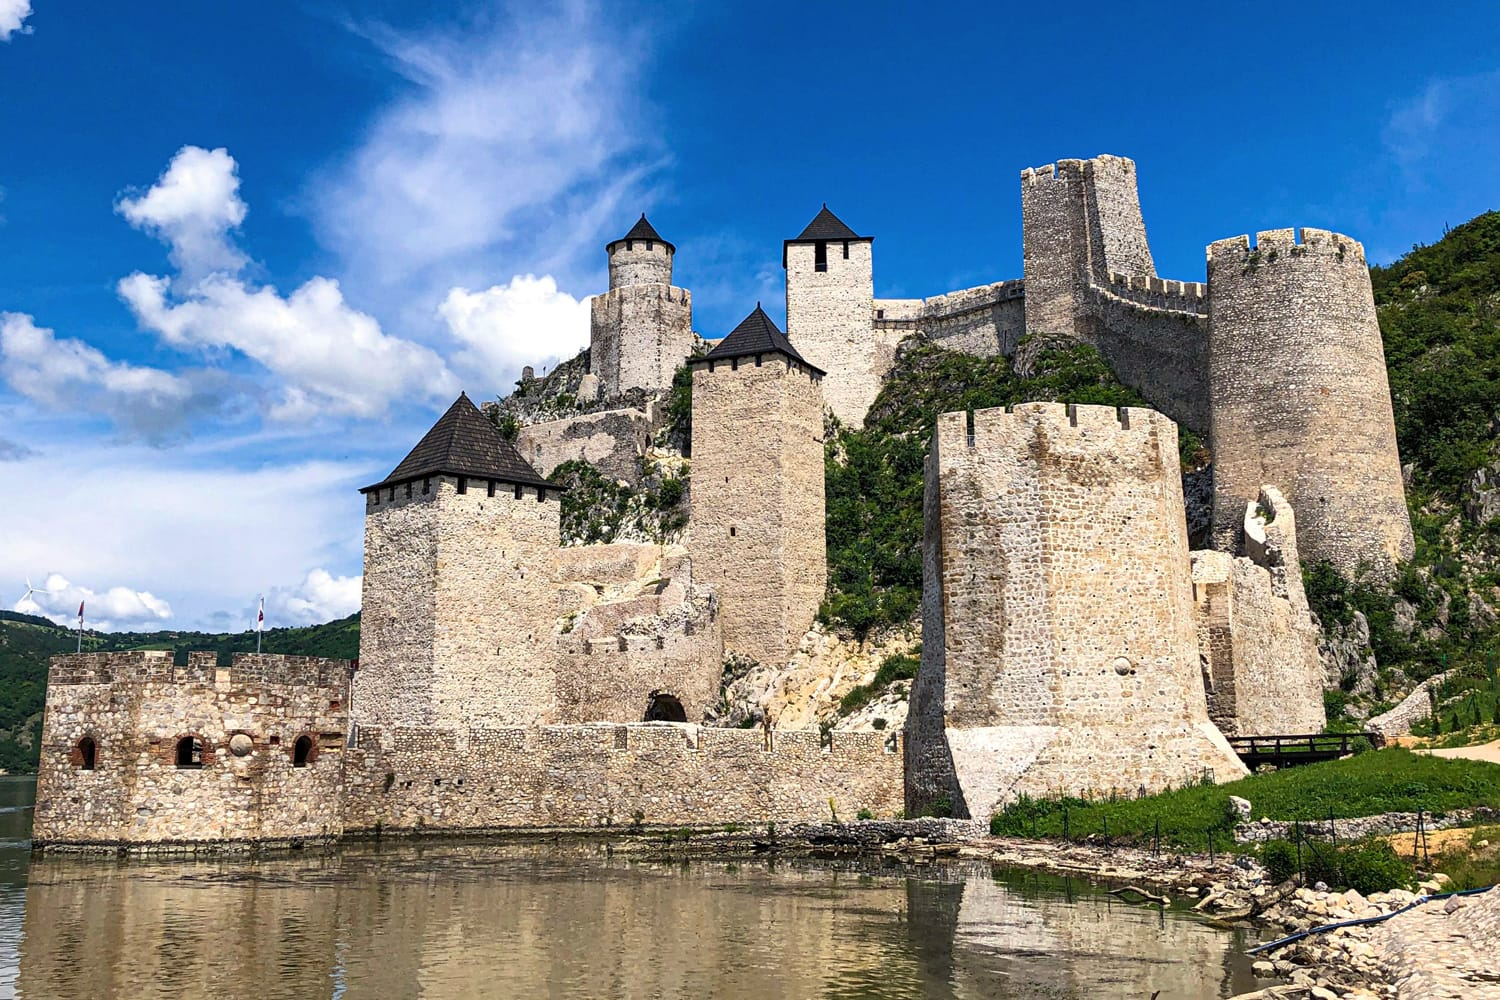 Golubac Fortress in Serbia